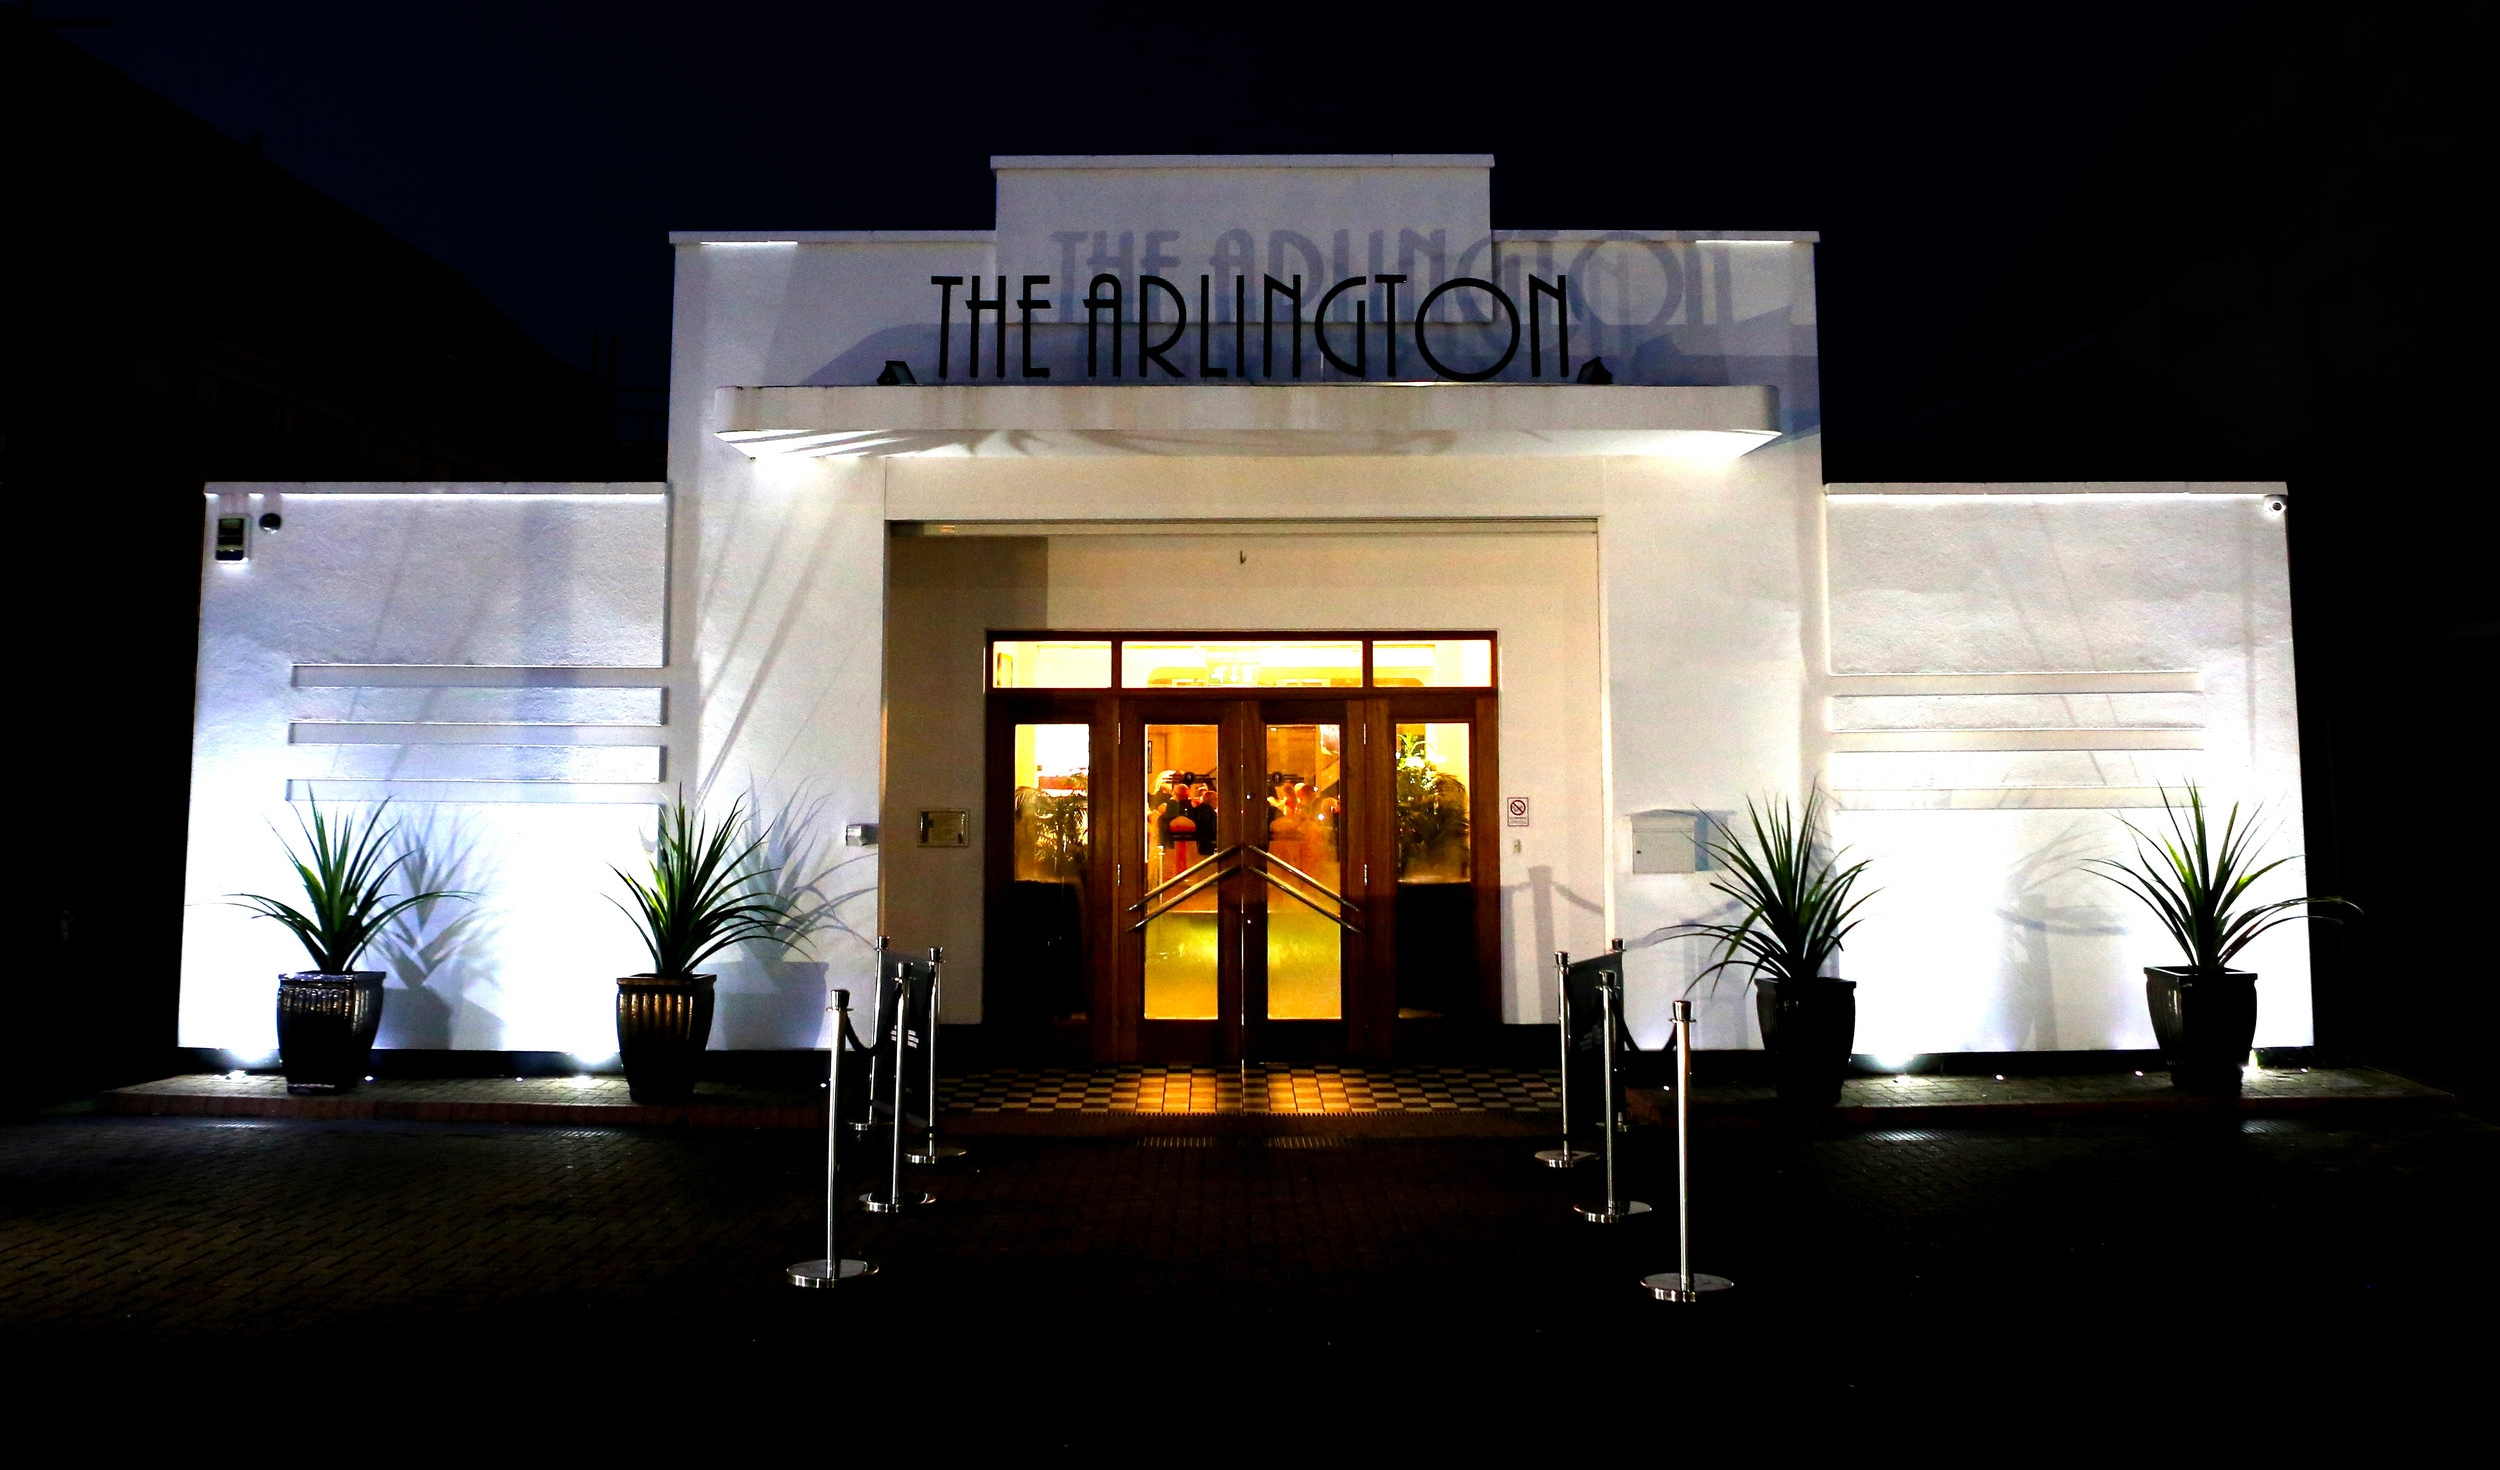 Entrance to the Arlington Ballroom, London Road, Leigh-on-Sea, Essex